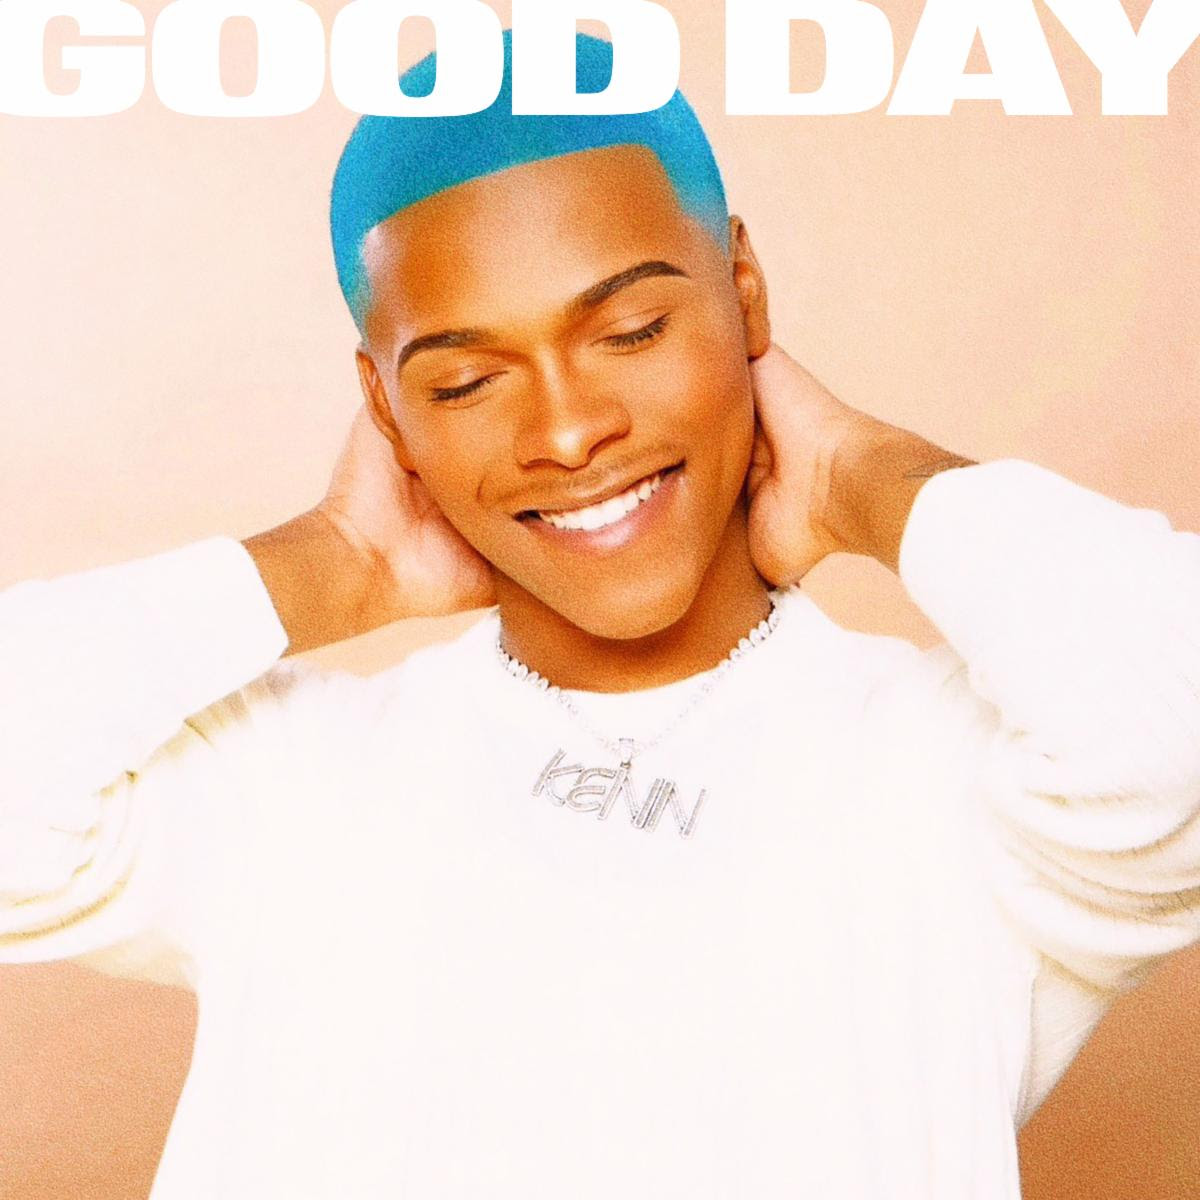 """KIDD KENN RELEASES NEW TRACK """"GOOD DAY"""" FROM FORTHCOMING EP """"PROBLEM CHILD,"""""""